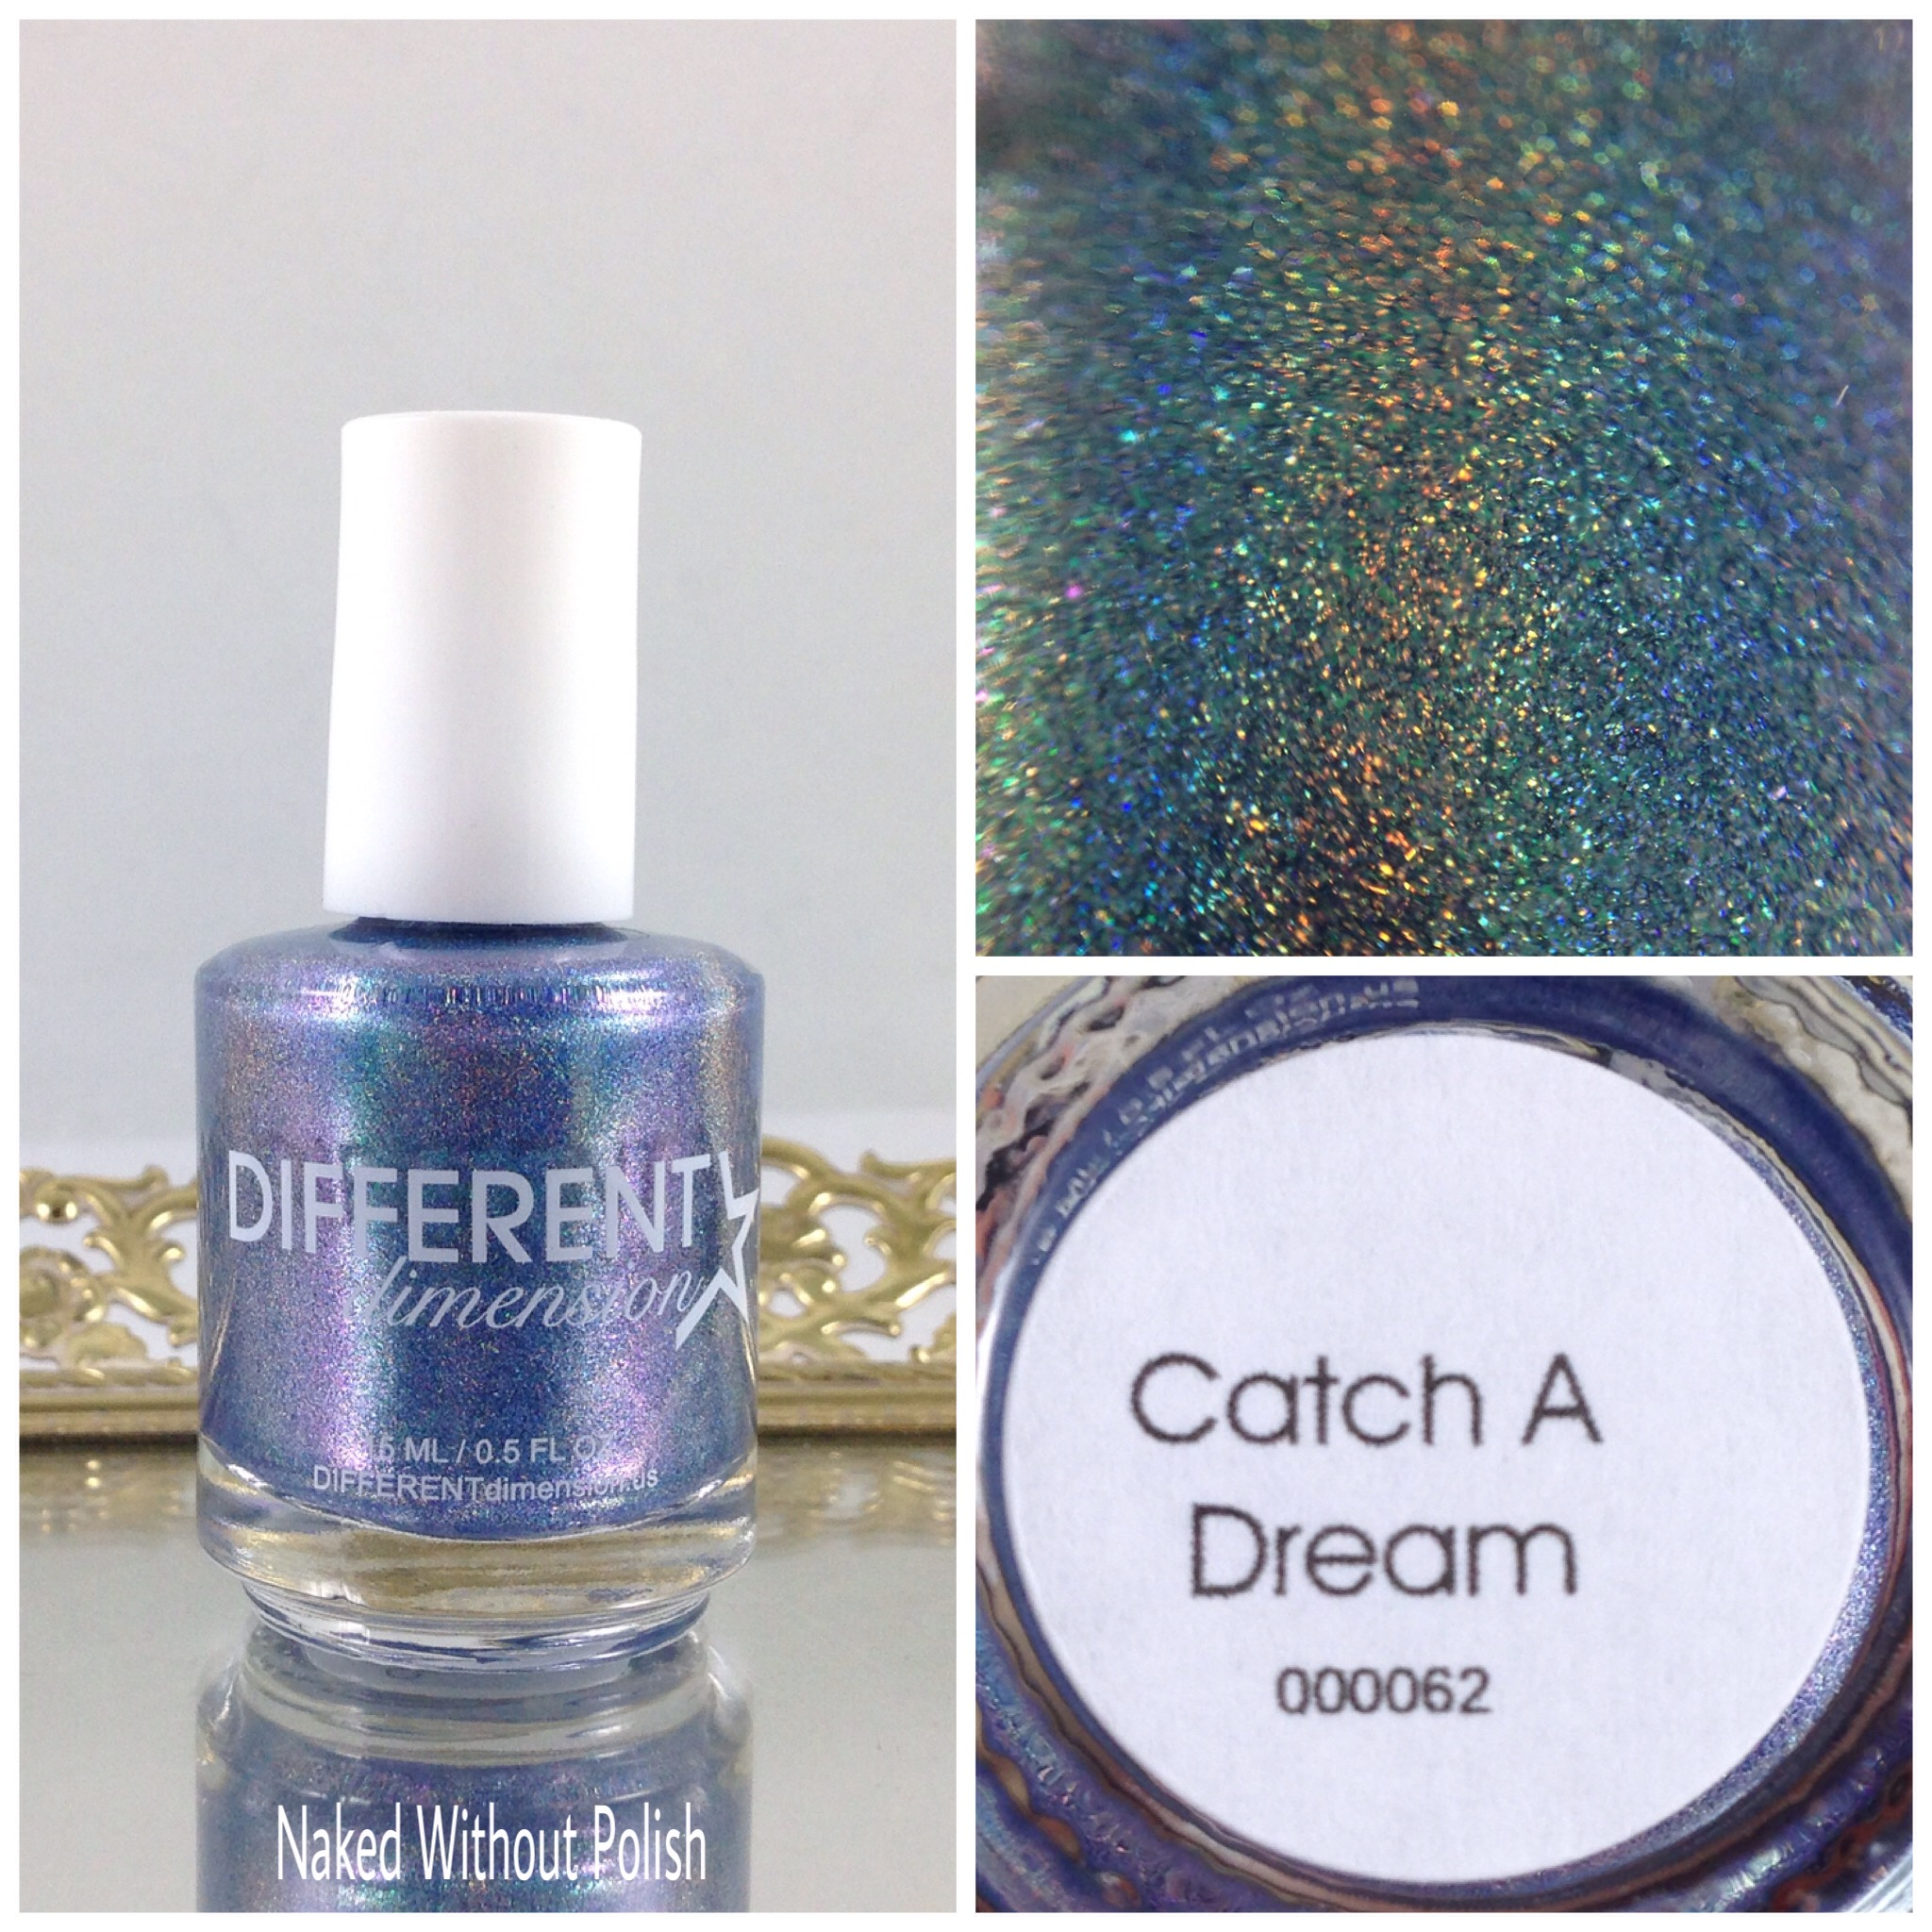 Different-Dimension-Catcha-Dream-1